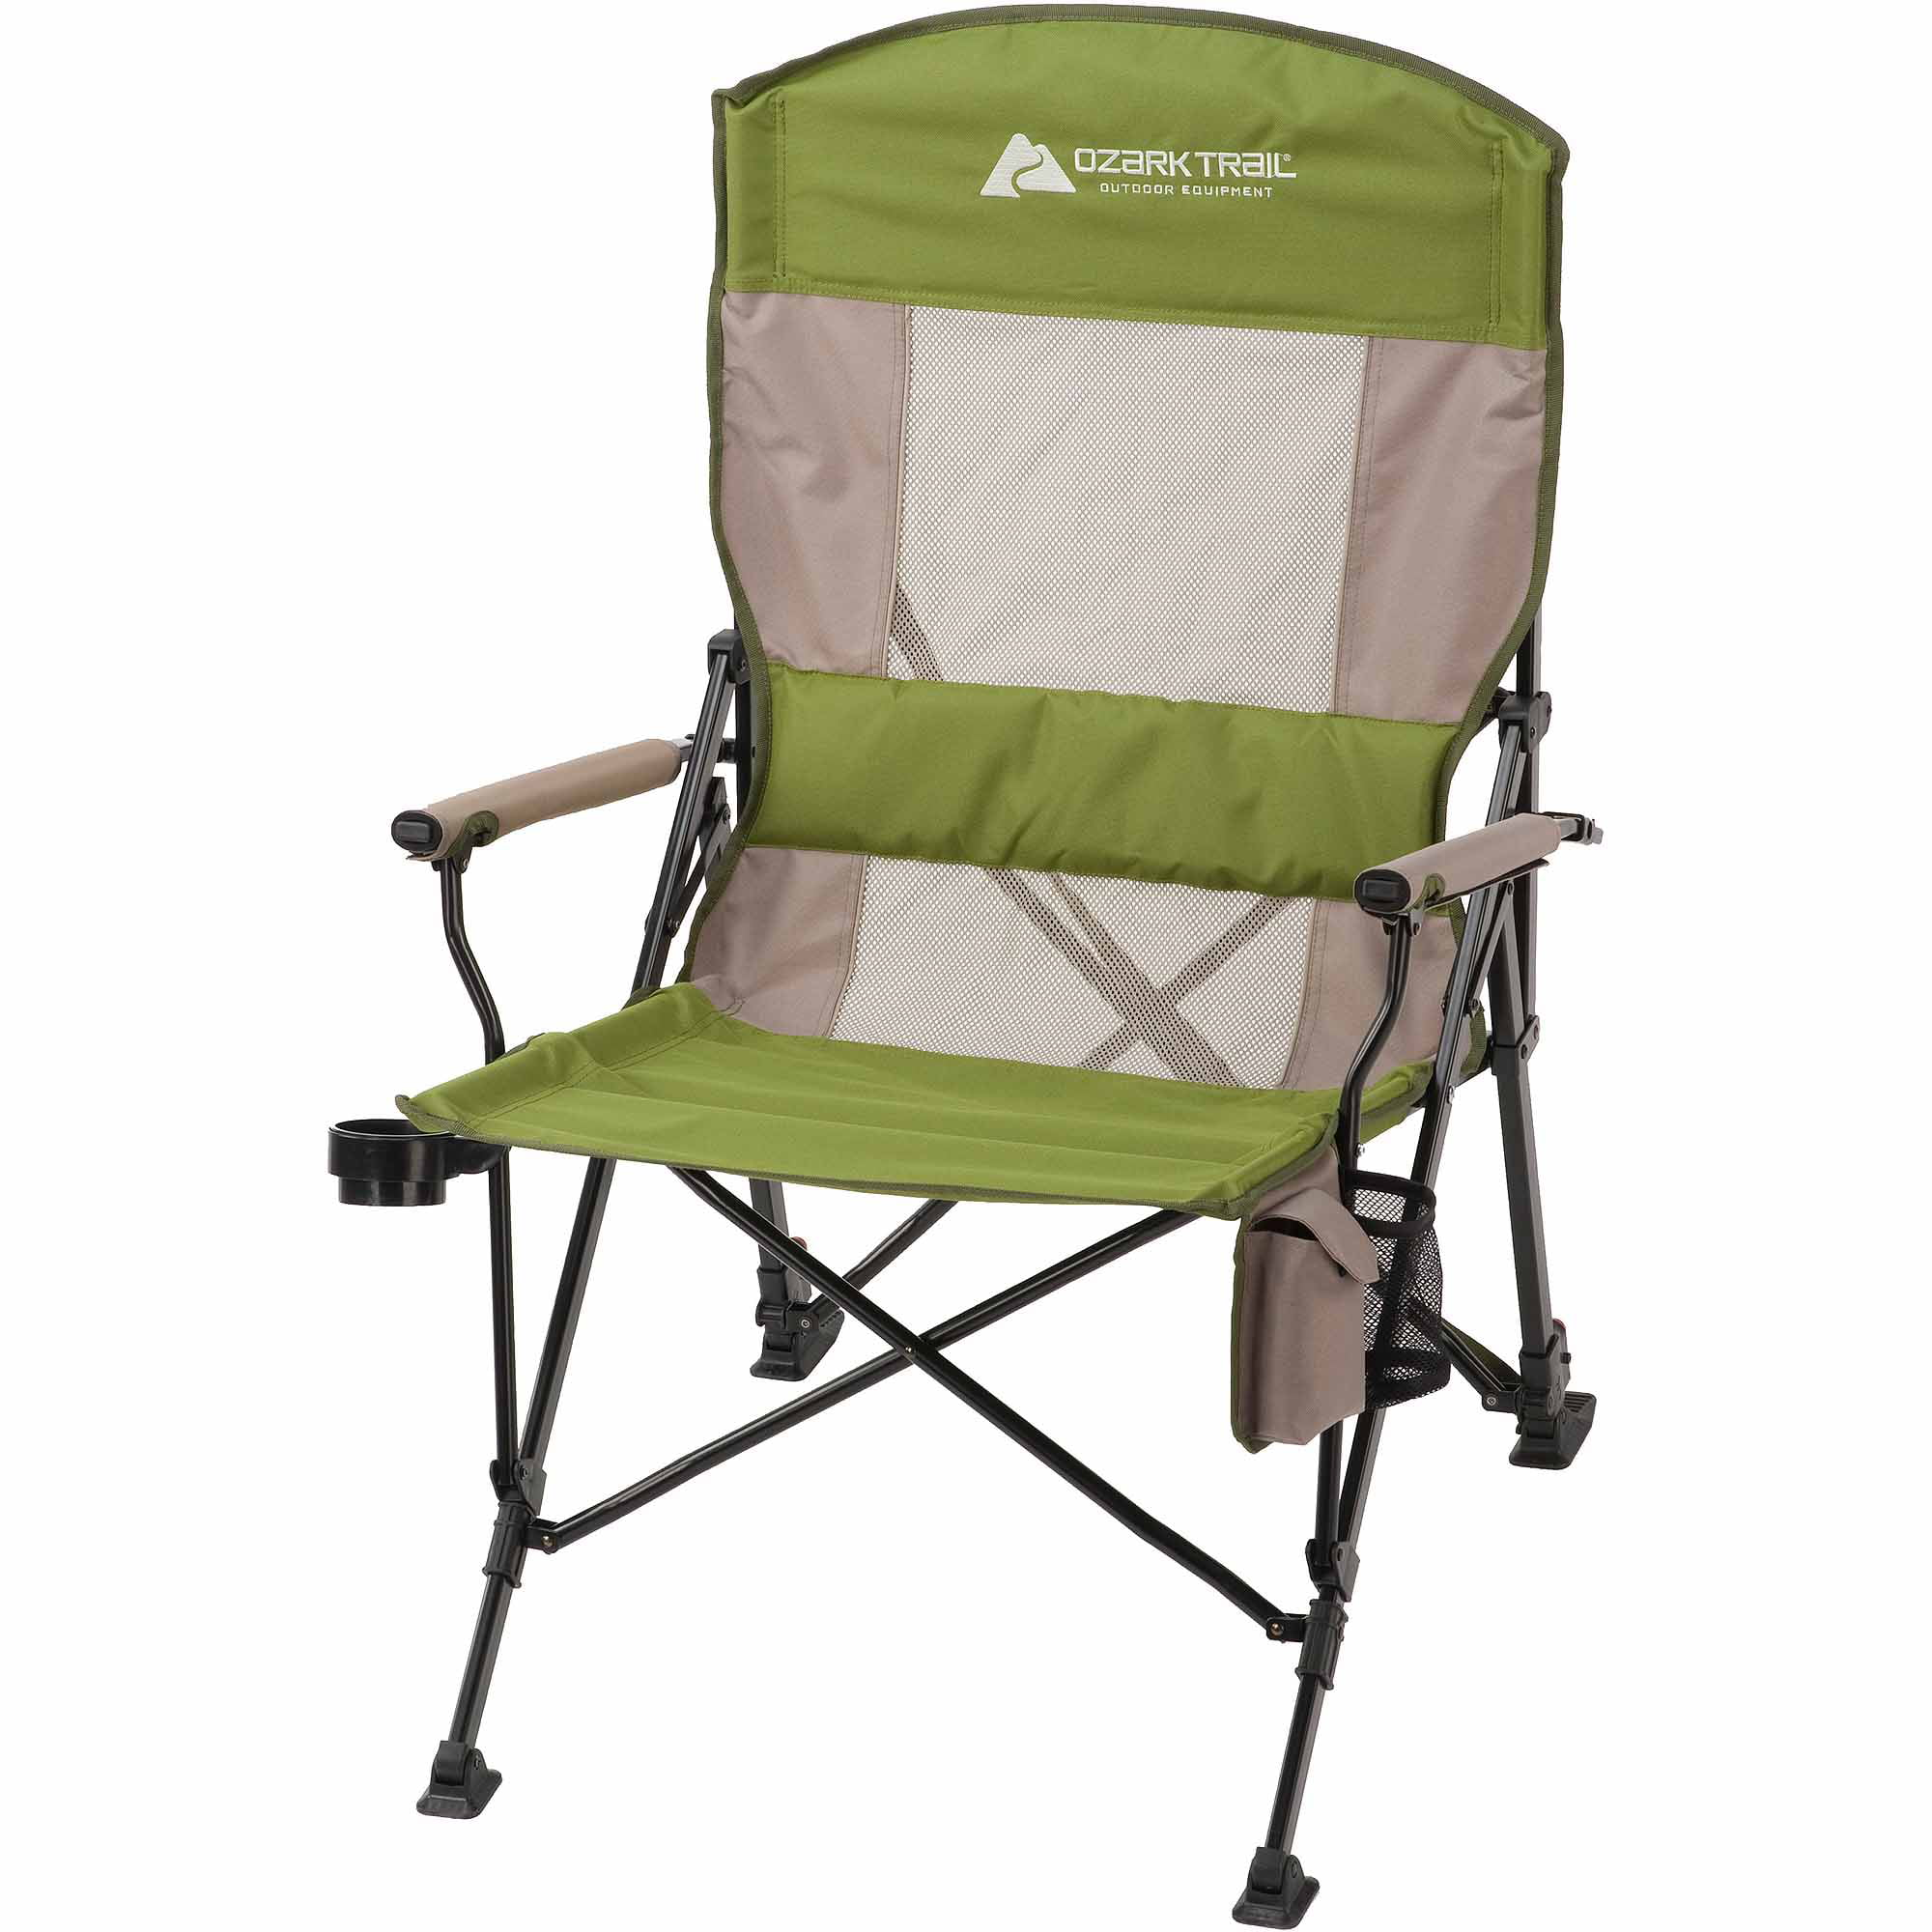 Ozark Trail 3 Piece Portable Table and Chair Set Walmart